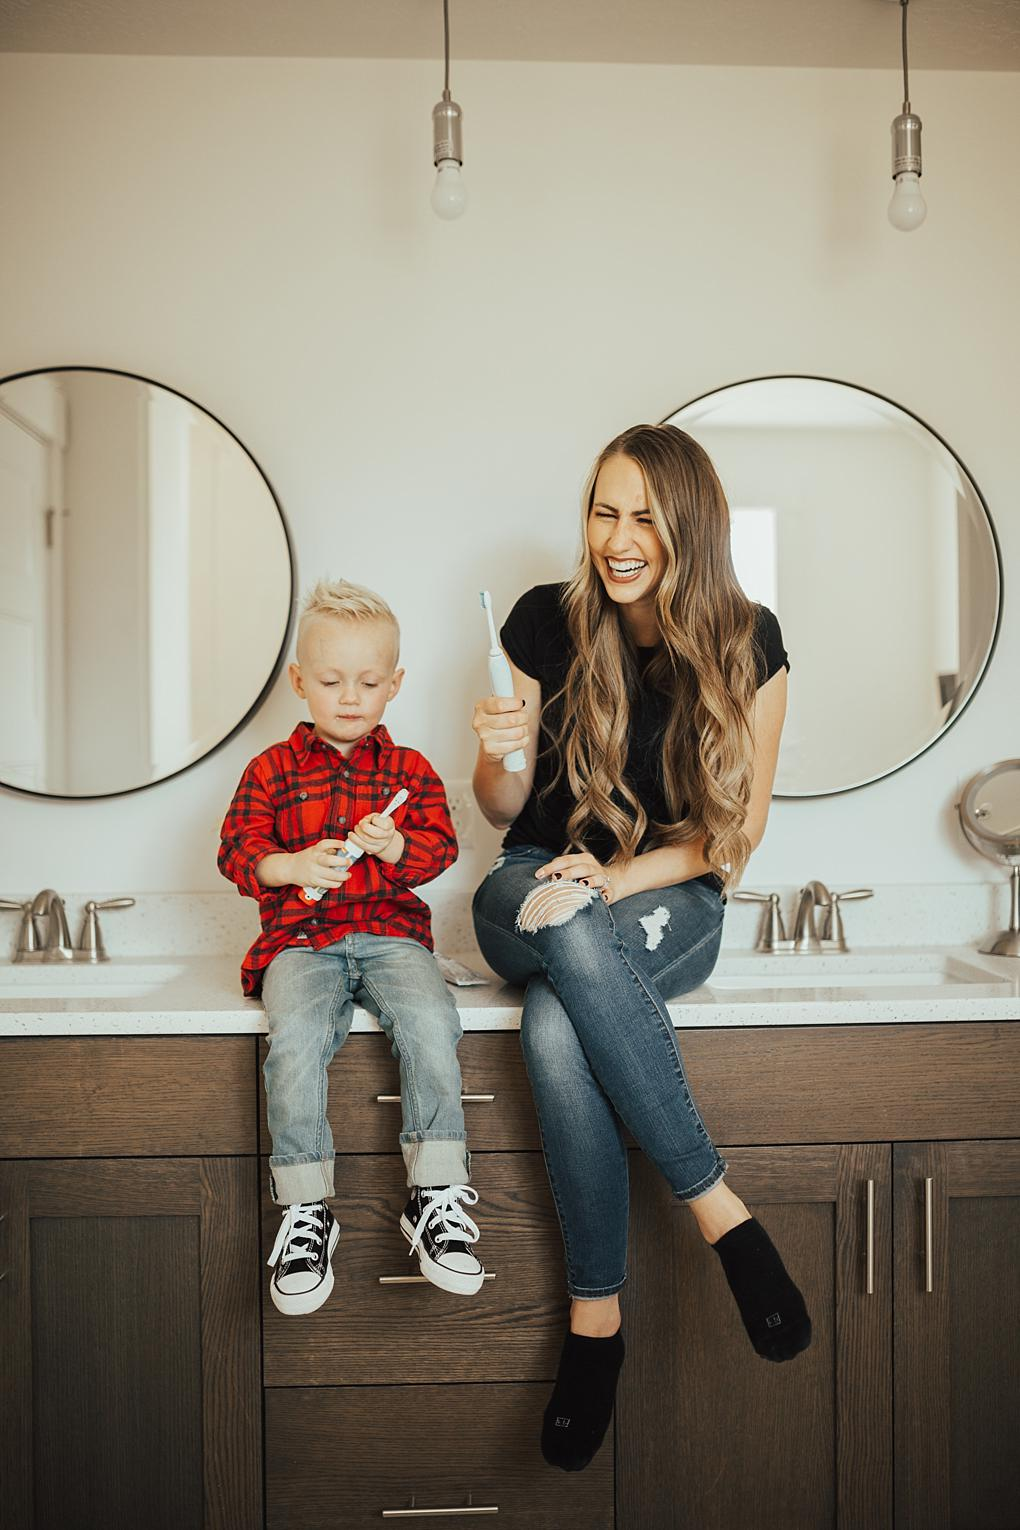 Quality Time Together No Matter Where You Are by Utah mom blogger Dani Marie